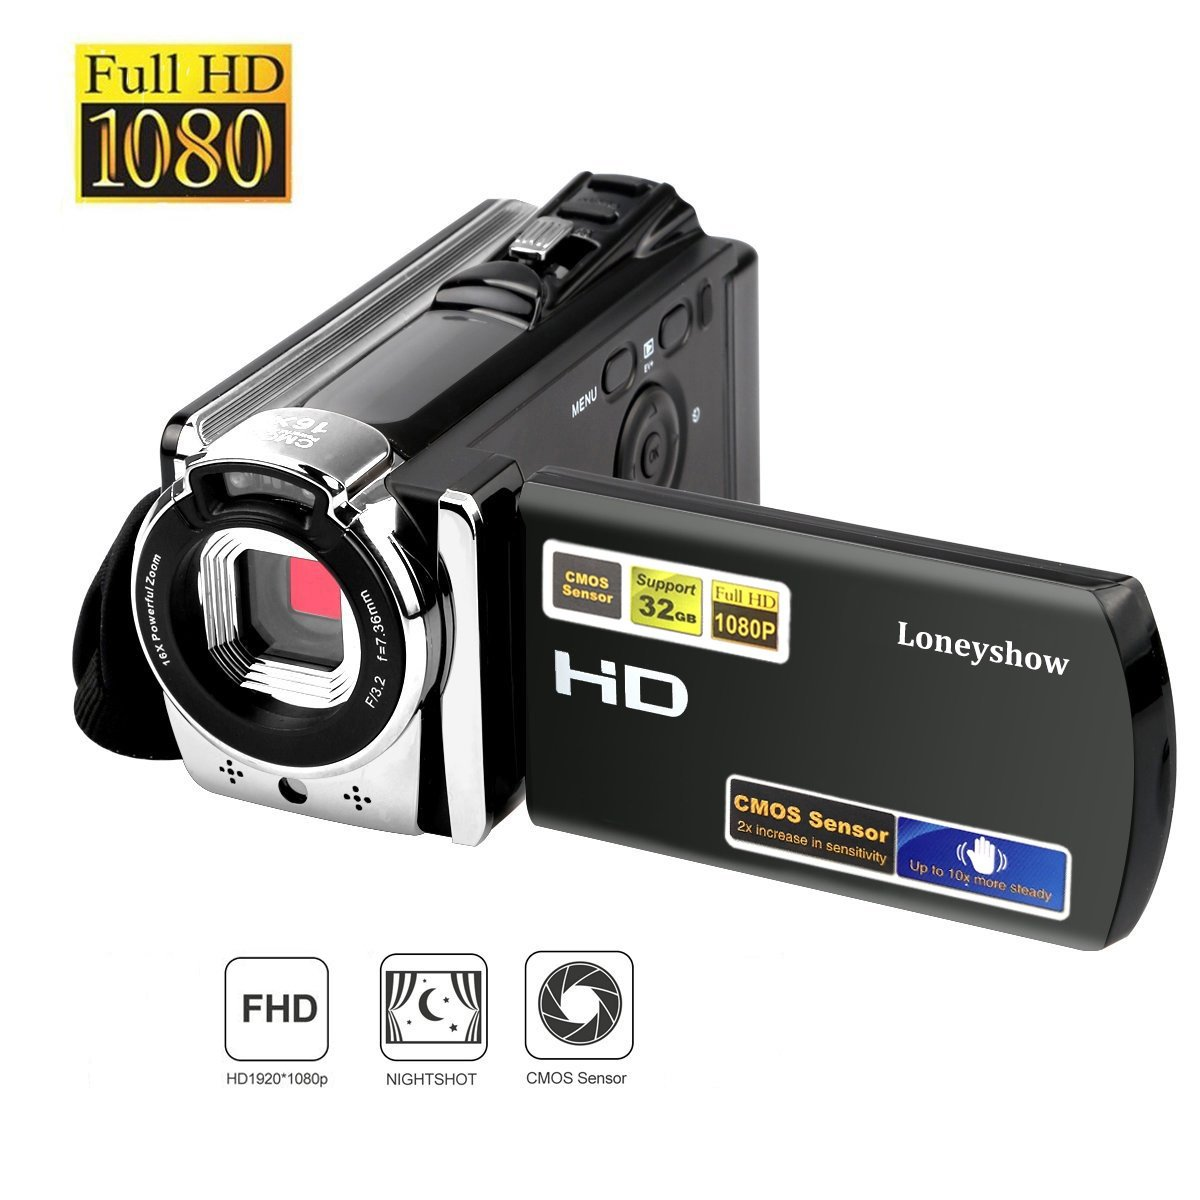 Camera Camcorder HD 1080P 24MP 16X Digital Zoom Video Camera Infrared Night Vision Handy Camera with 3.0'' LCD and 270 Degree Rotation Screen for Novice(Black)